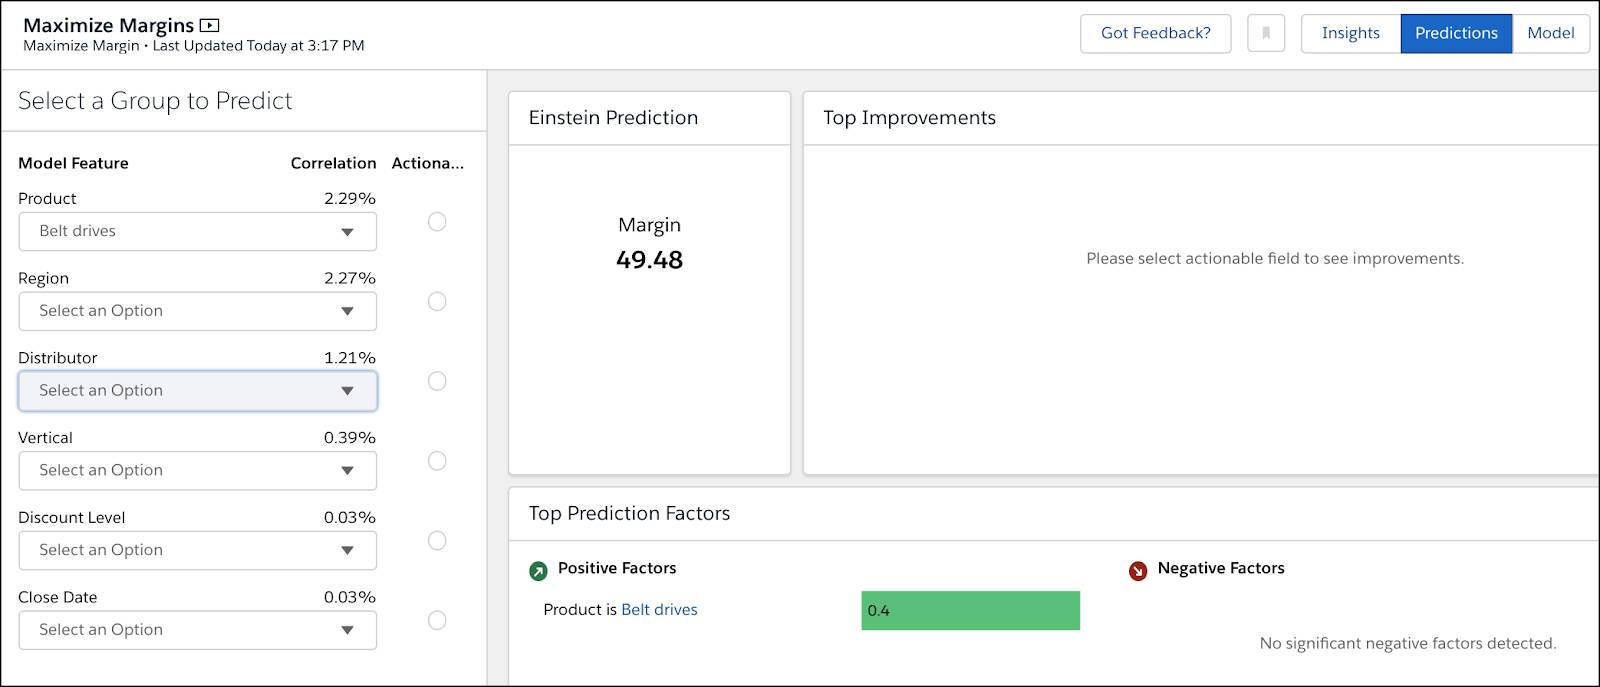 When Product is Belt Drives, margin drops to 49.48